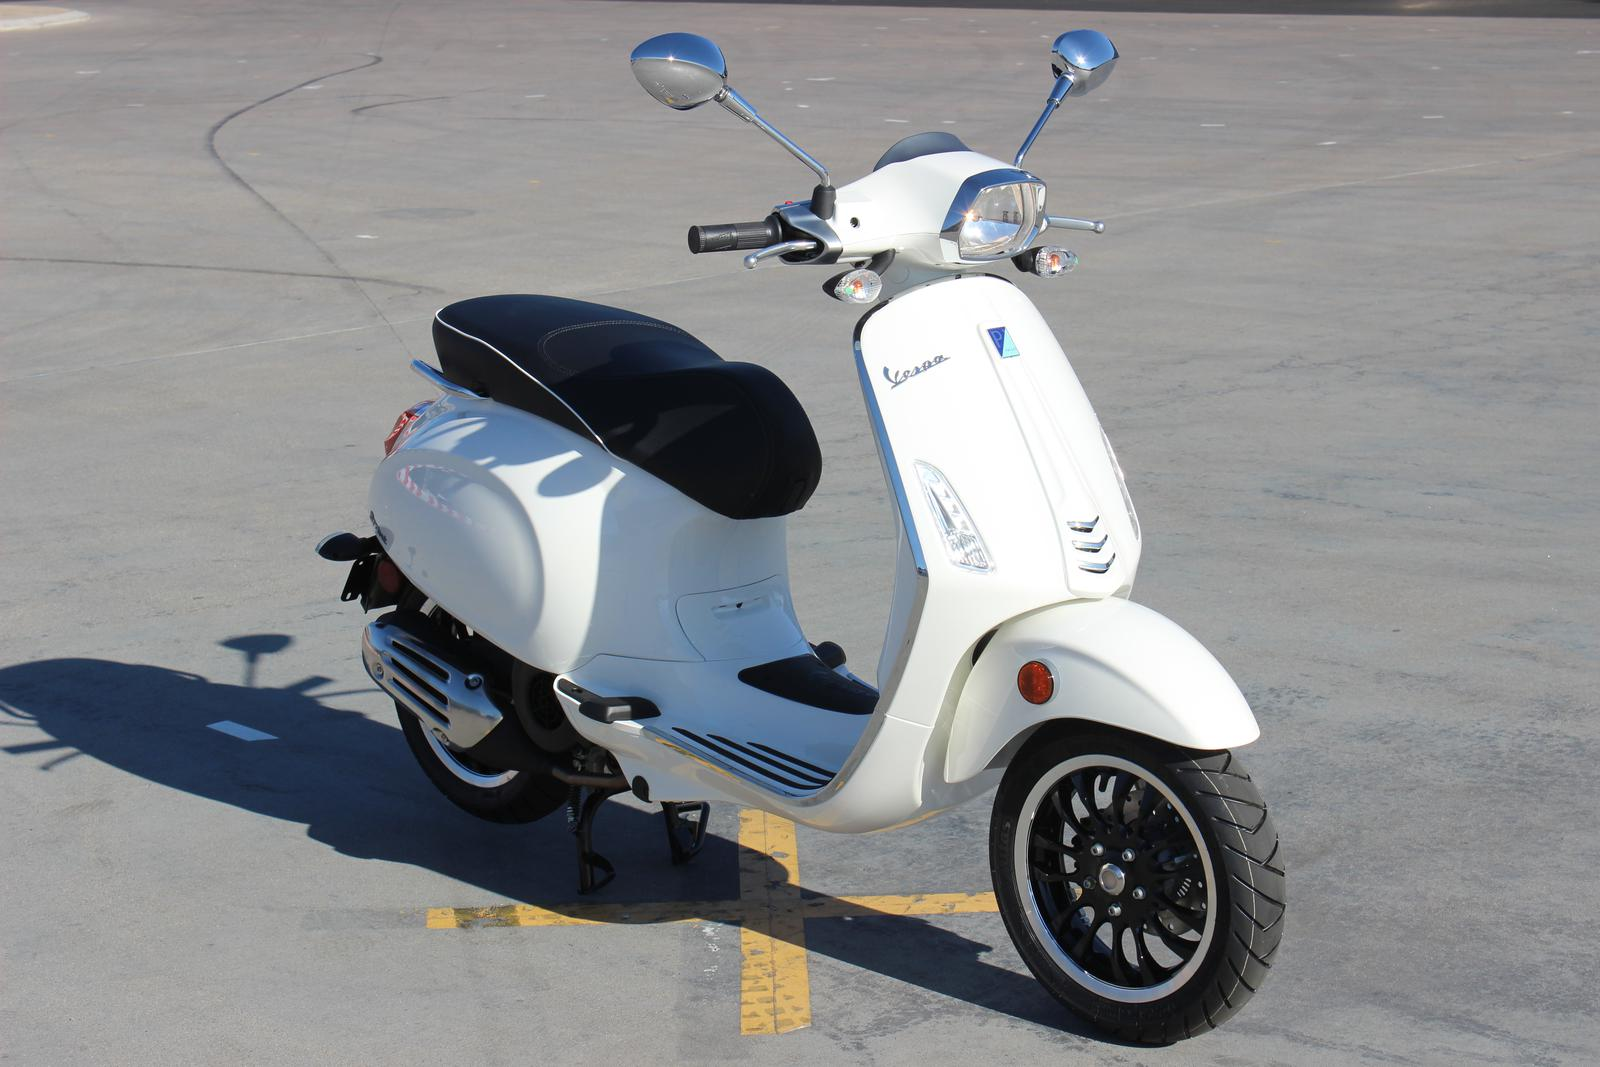 2018 Vespa Sprint 150 for sale in Scottsdale, AZ. GO AZ Motorcycles ...